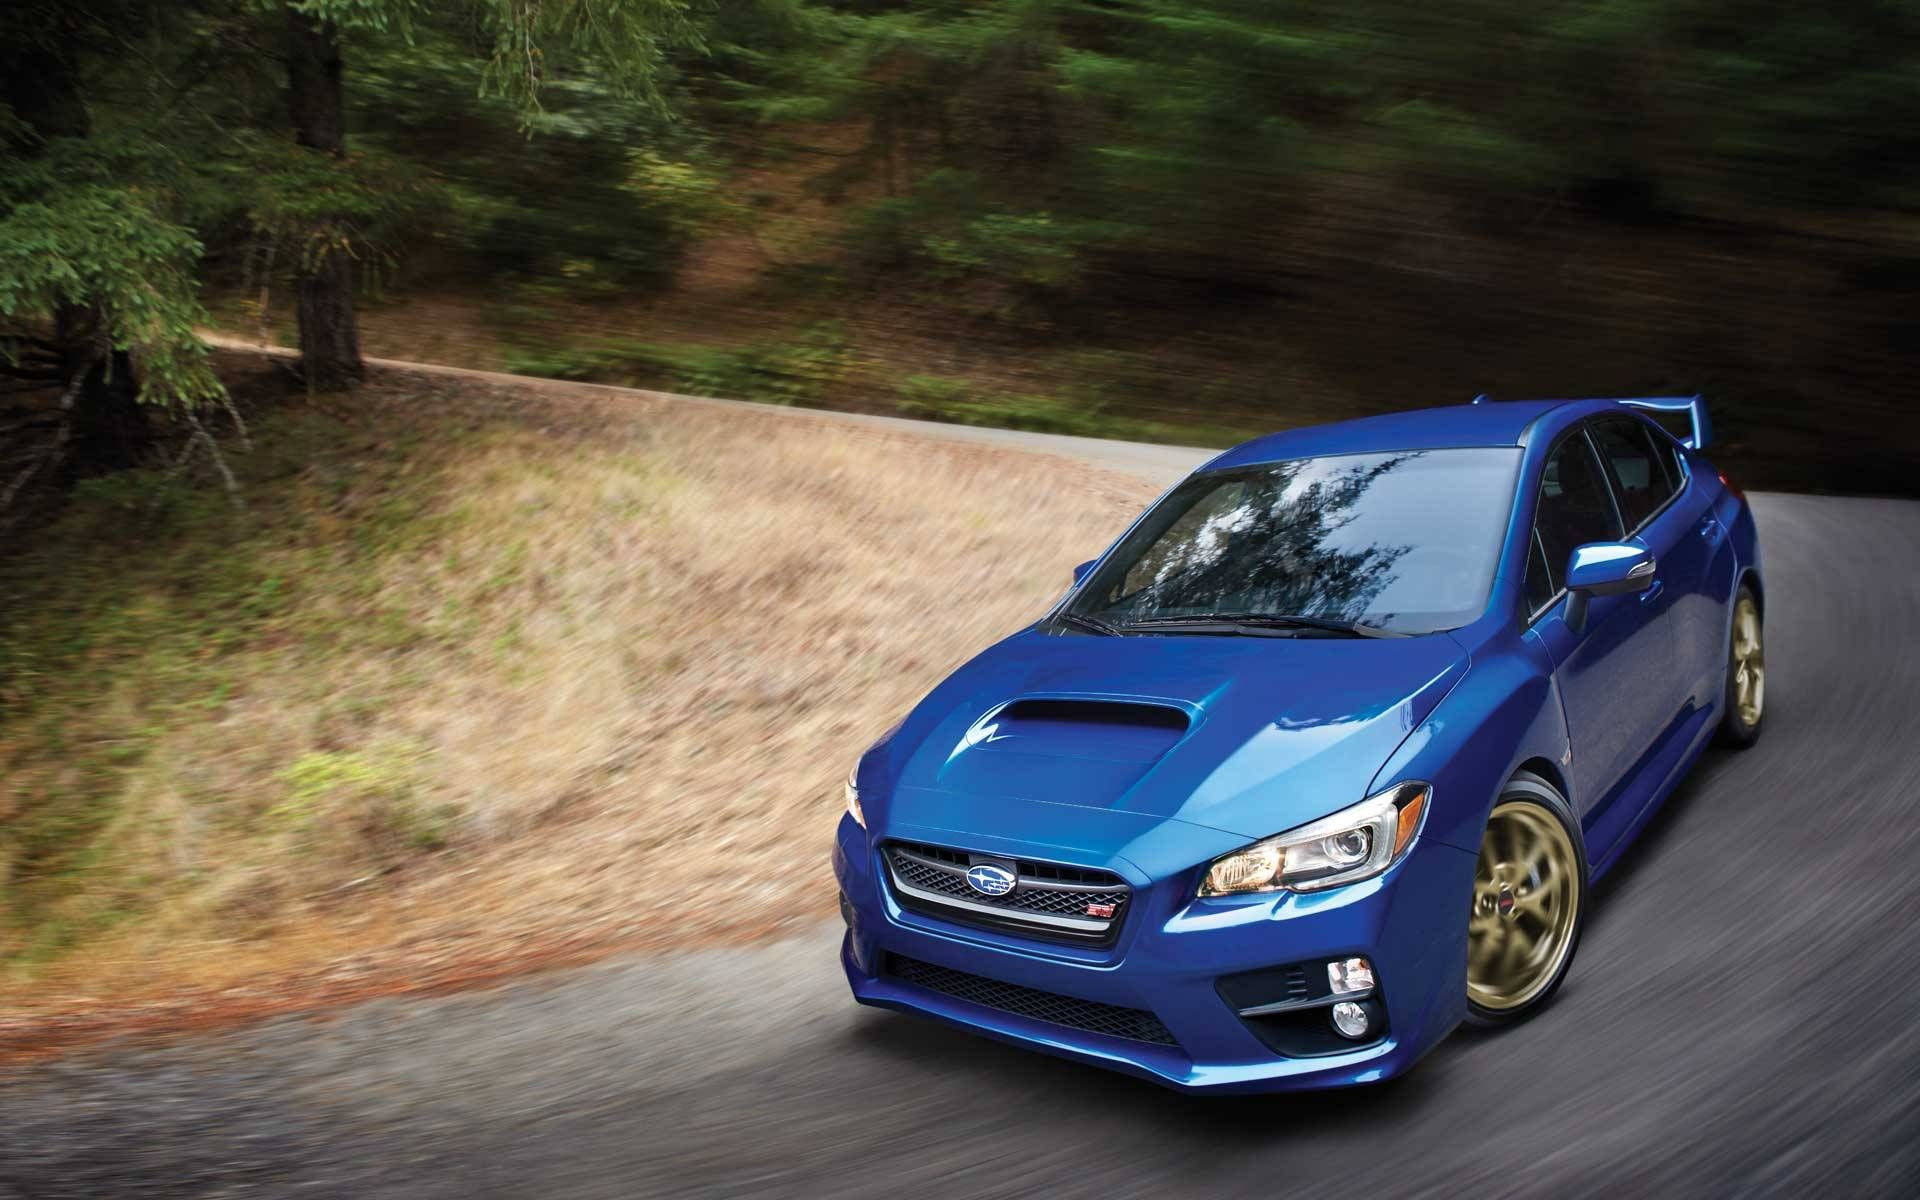 Subaru Wrx Sti Launch Edition >> 2015 Wrx Sti Launch Edition Only 1 000 Of These Are